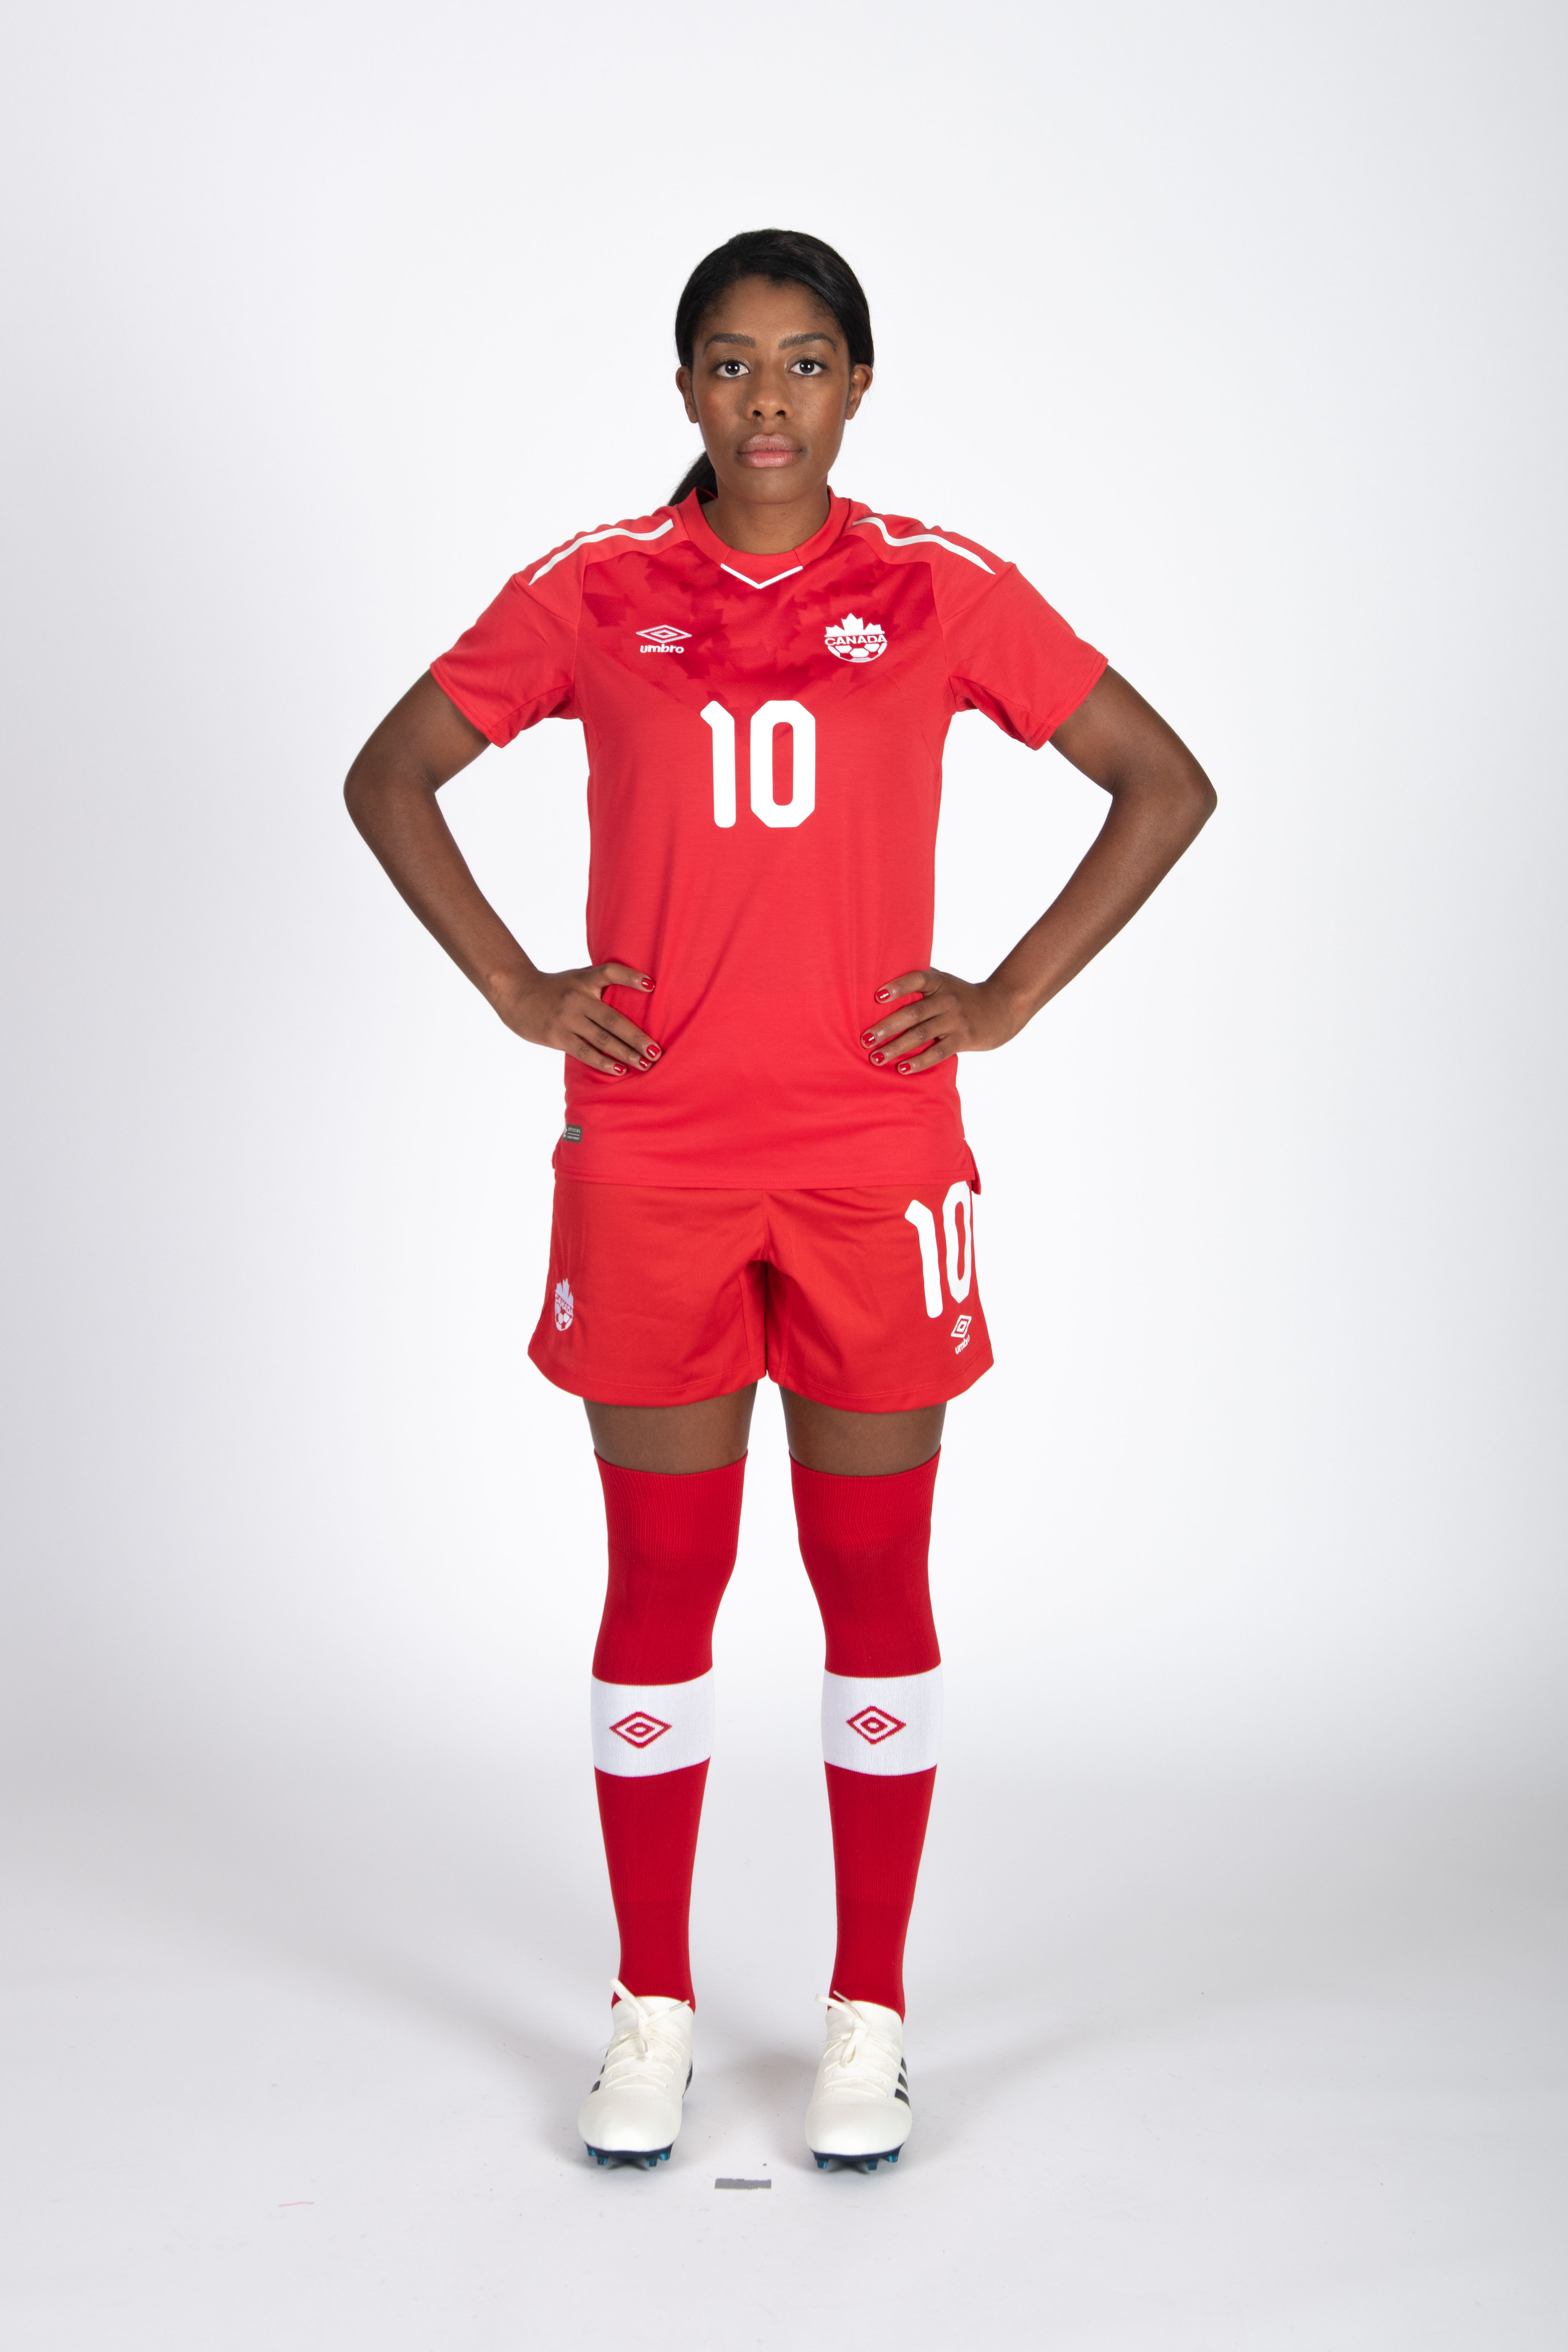 20180604_CANWNT_Lawrence_byBazyl04